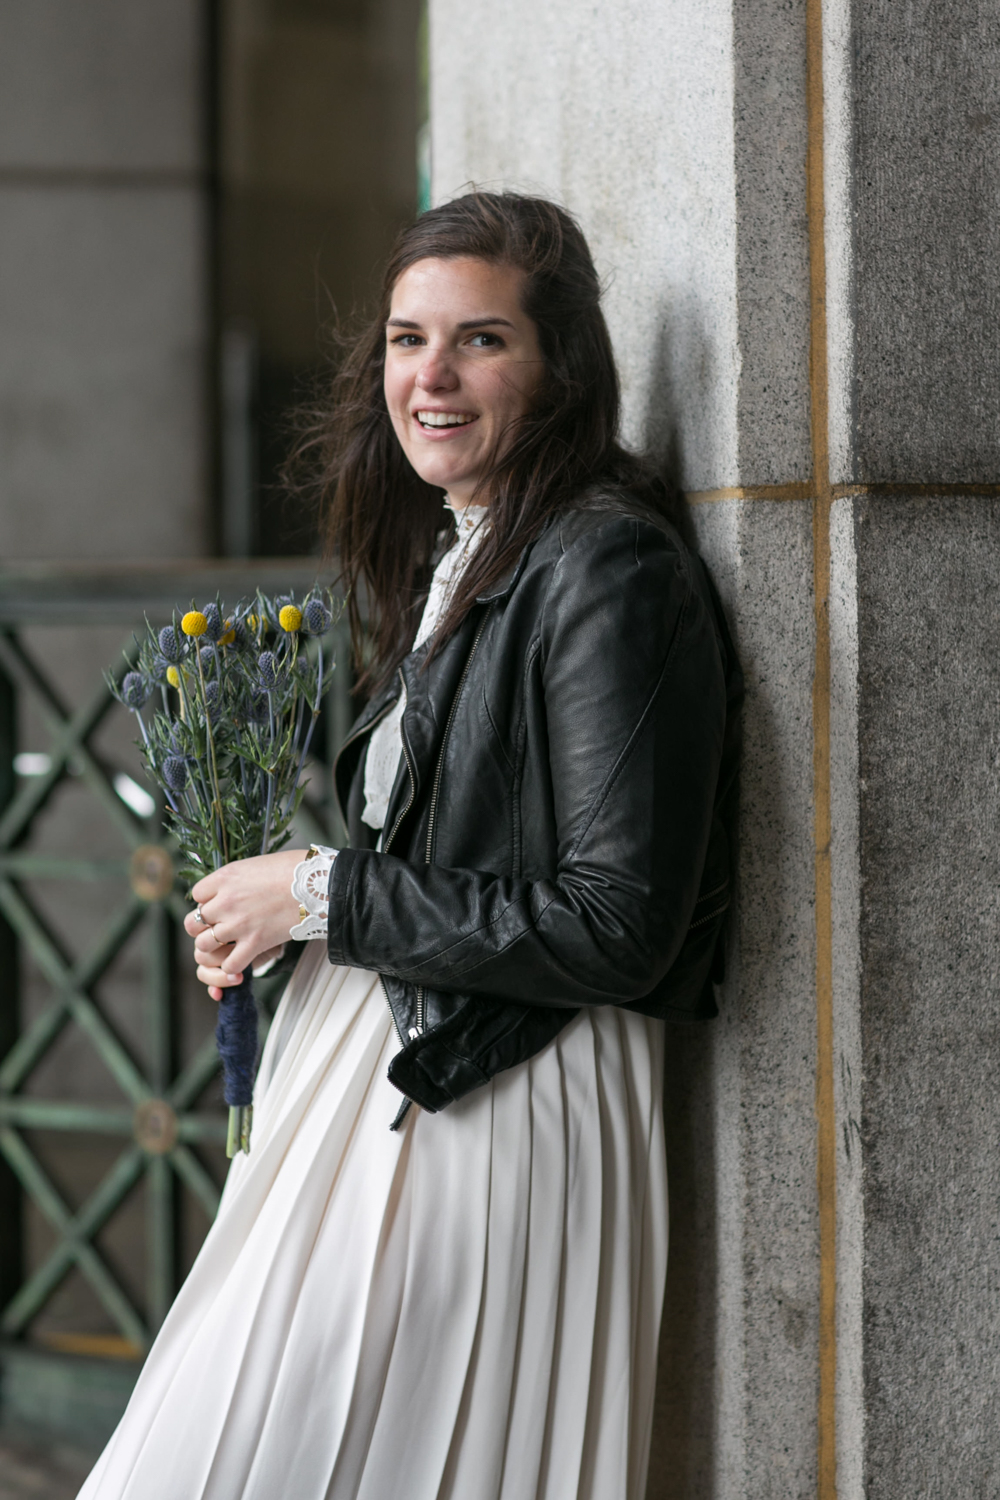 Photograph of New York Bride on elopement day